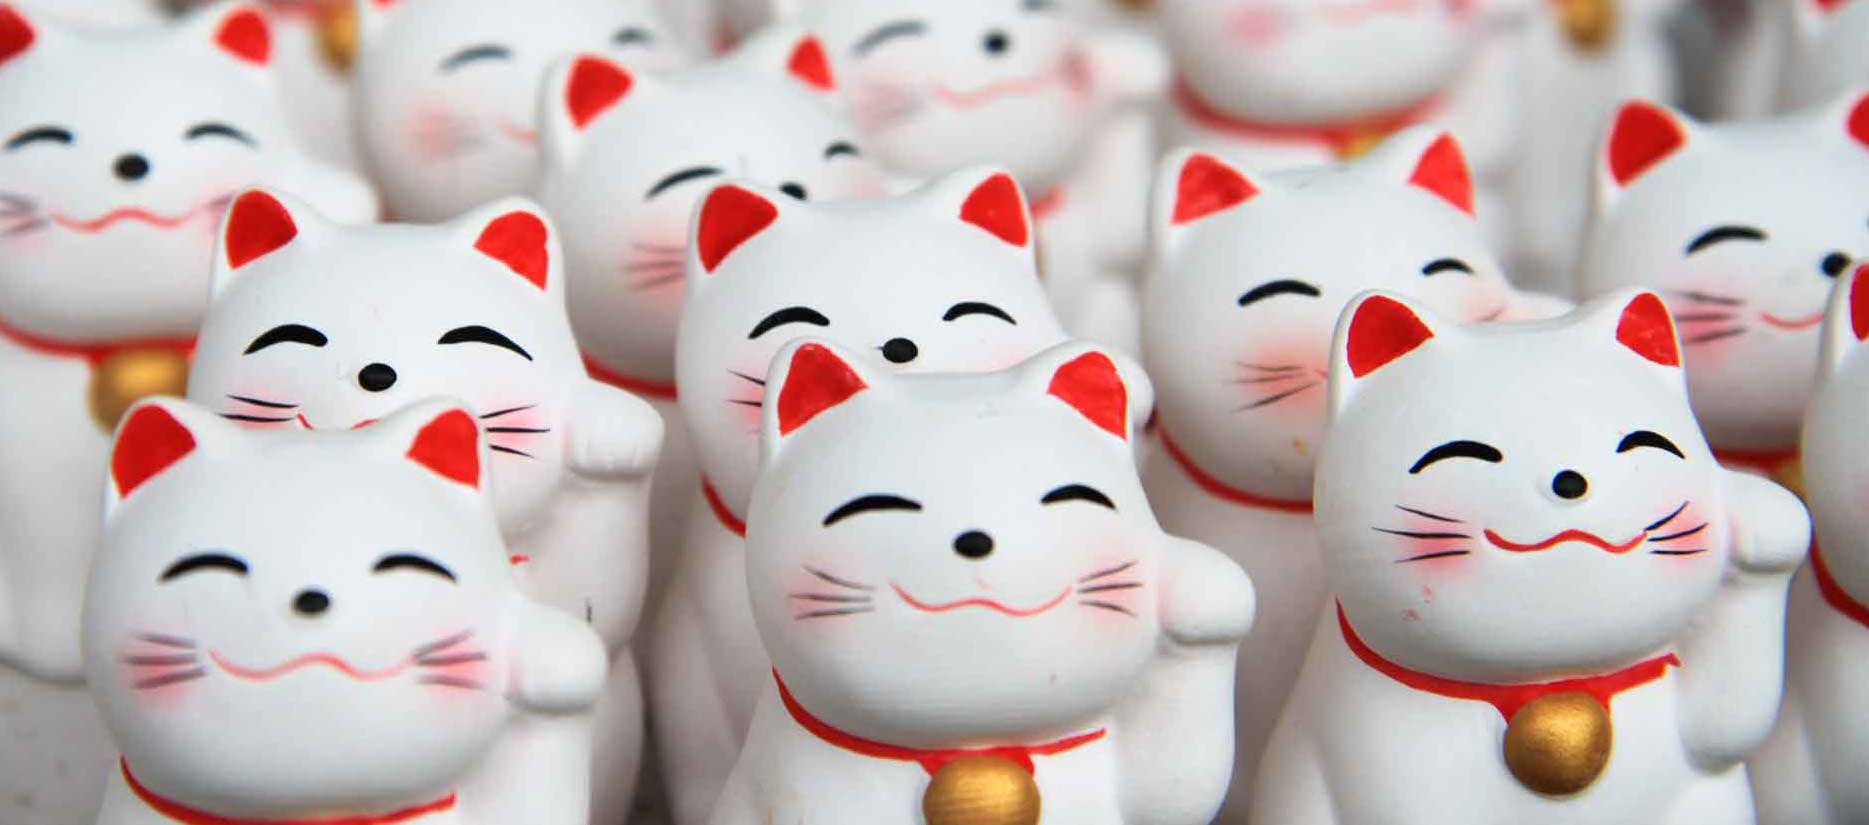 Gattini Maneki Neko